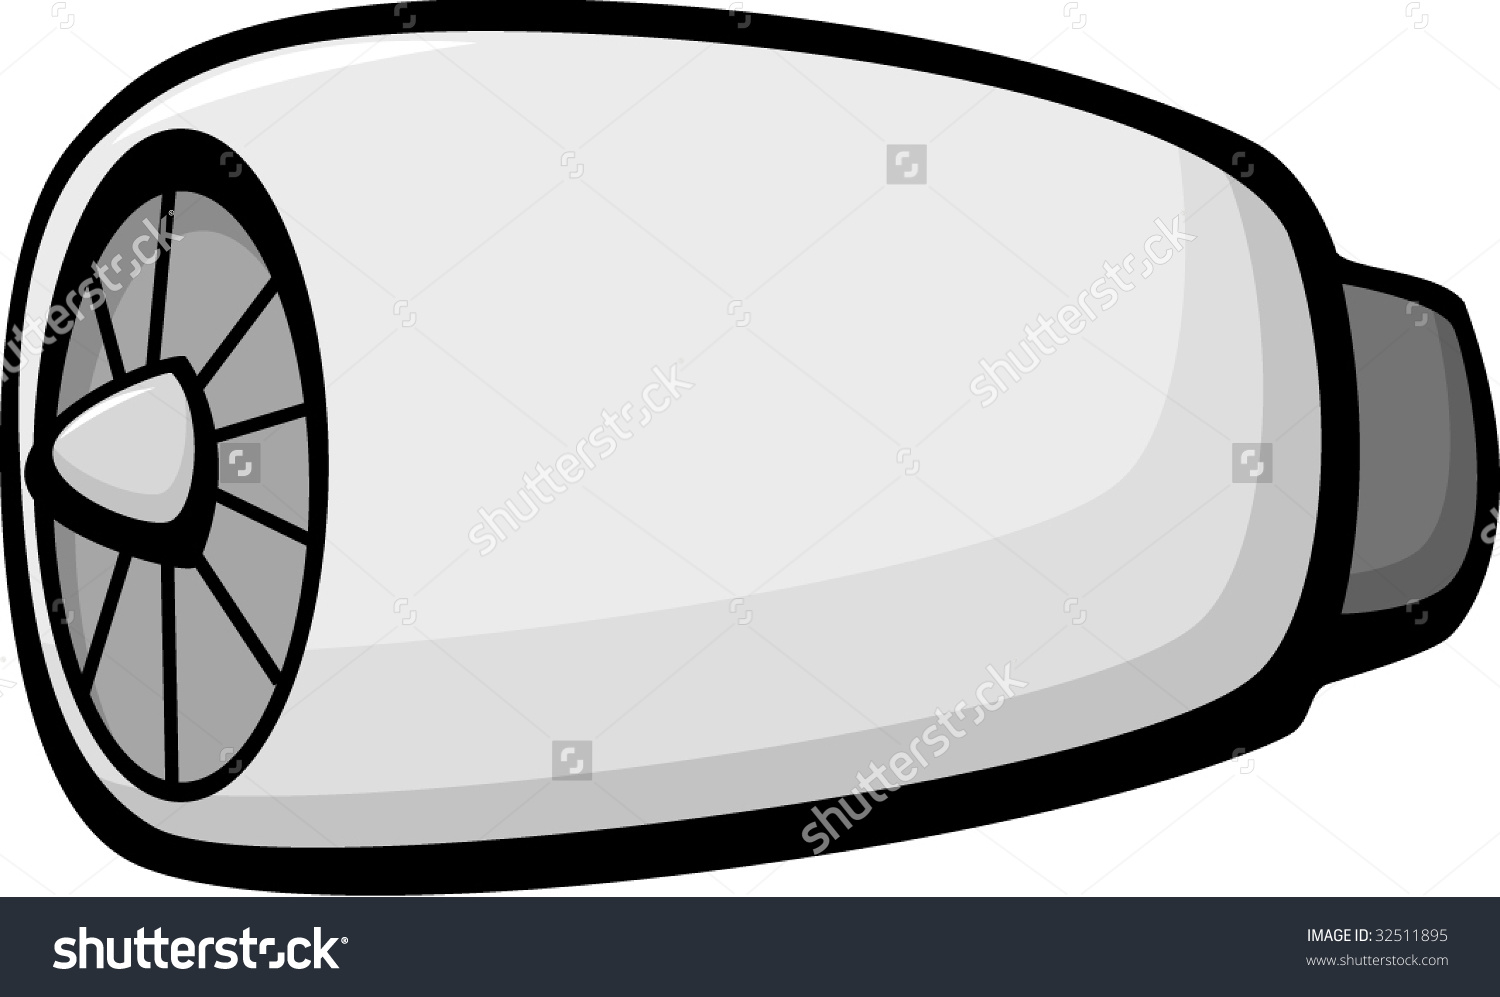 Propeller engine clipart - Clipground